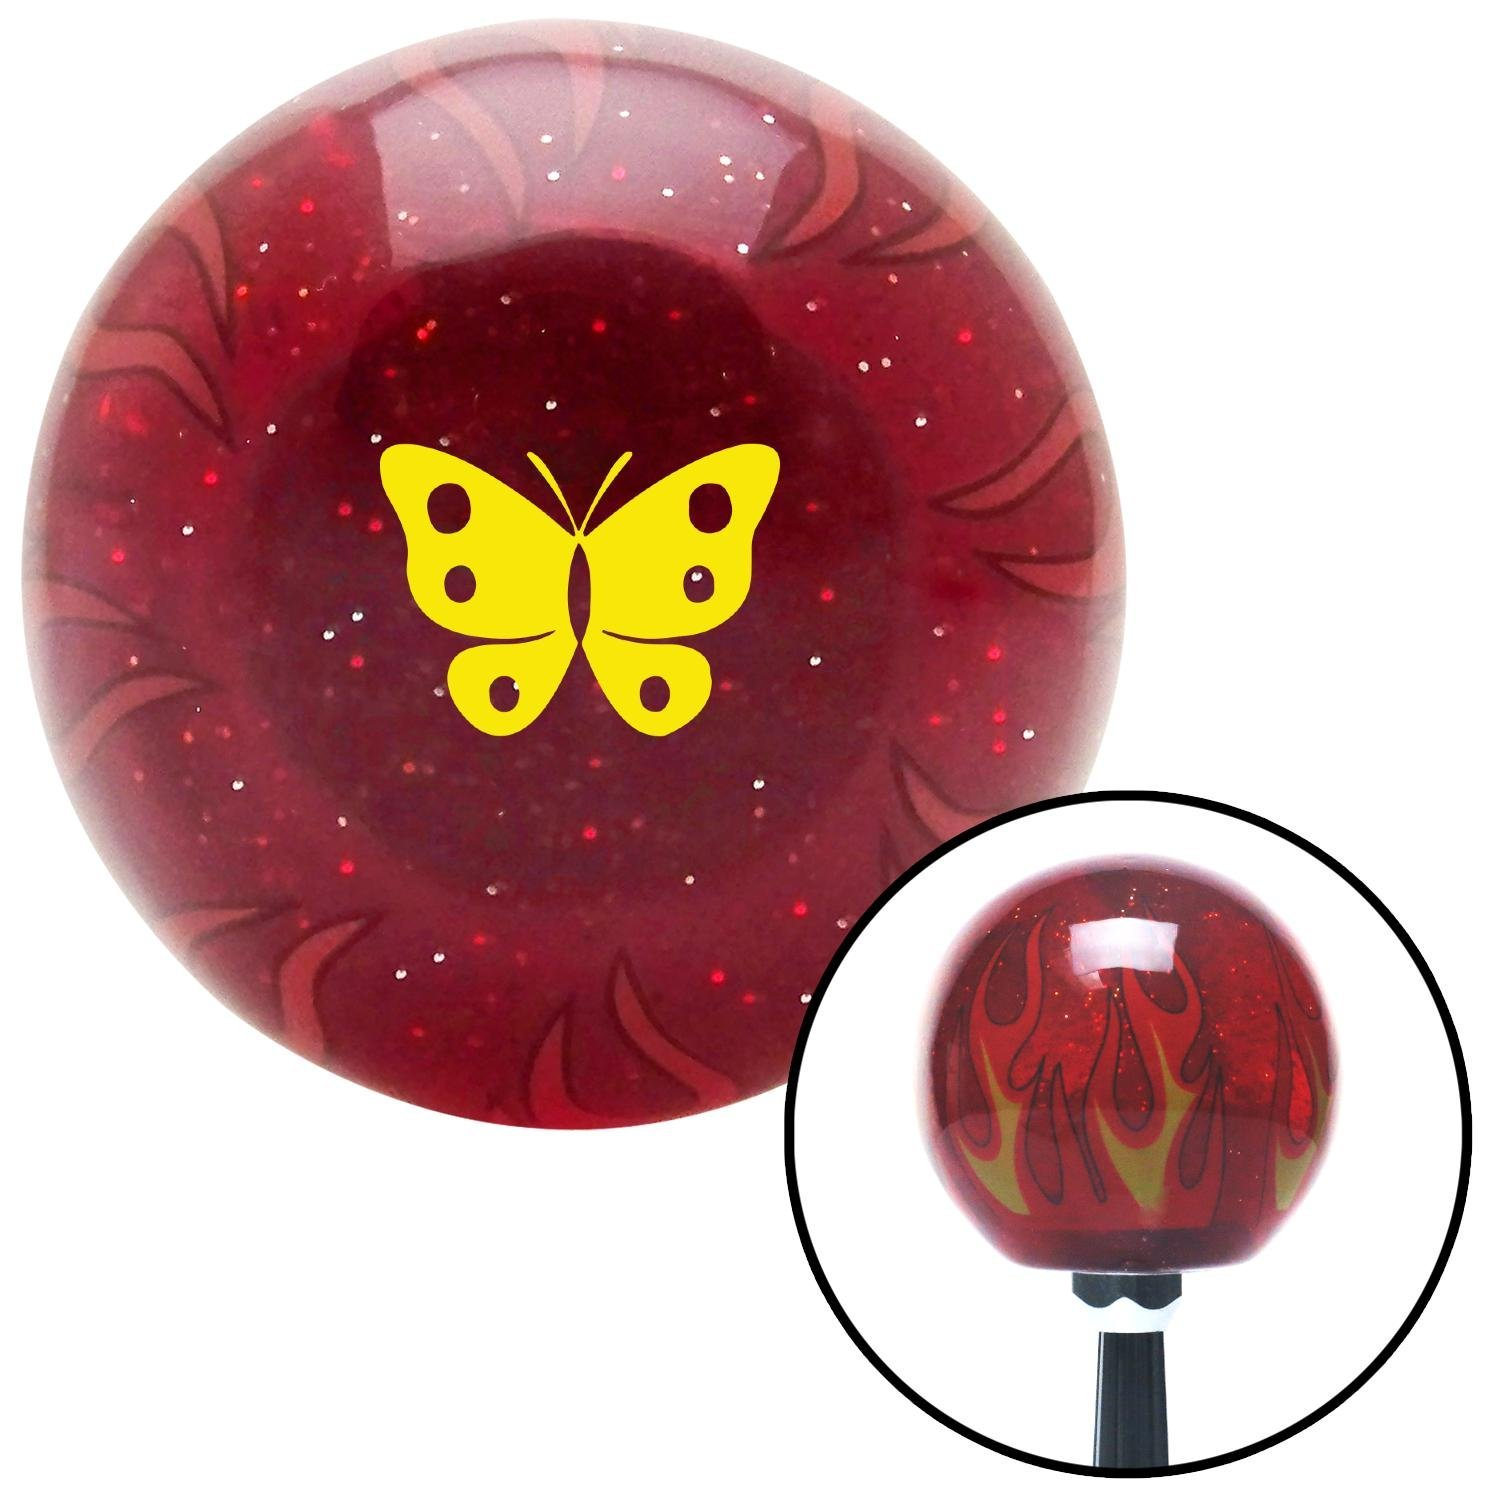 American Shifter 296444 Shift Knob Yellow Classic Butterfly Red Flame Metal Flake with M16 x 1.5 Insert